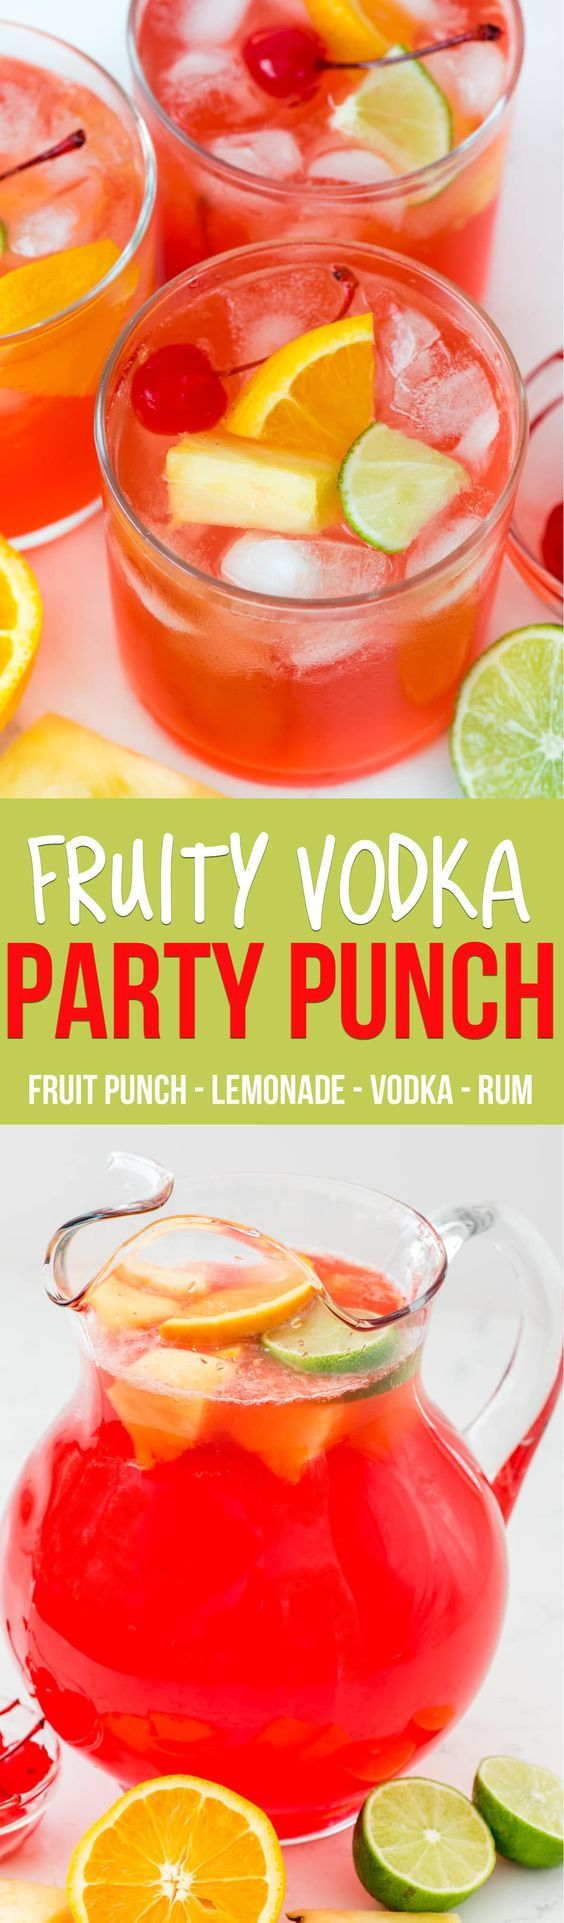 Fruity Vodka Party Punch is the perfect cocktail recipe for a party! This drink is full of lemonade and fruit punch, rum, and vodka and is the perfect easy punch recipe.